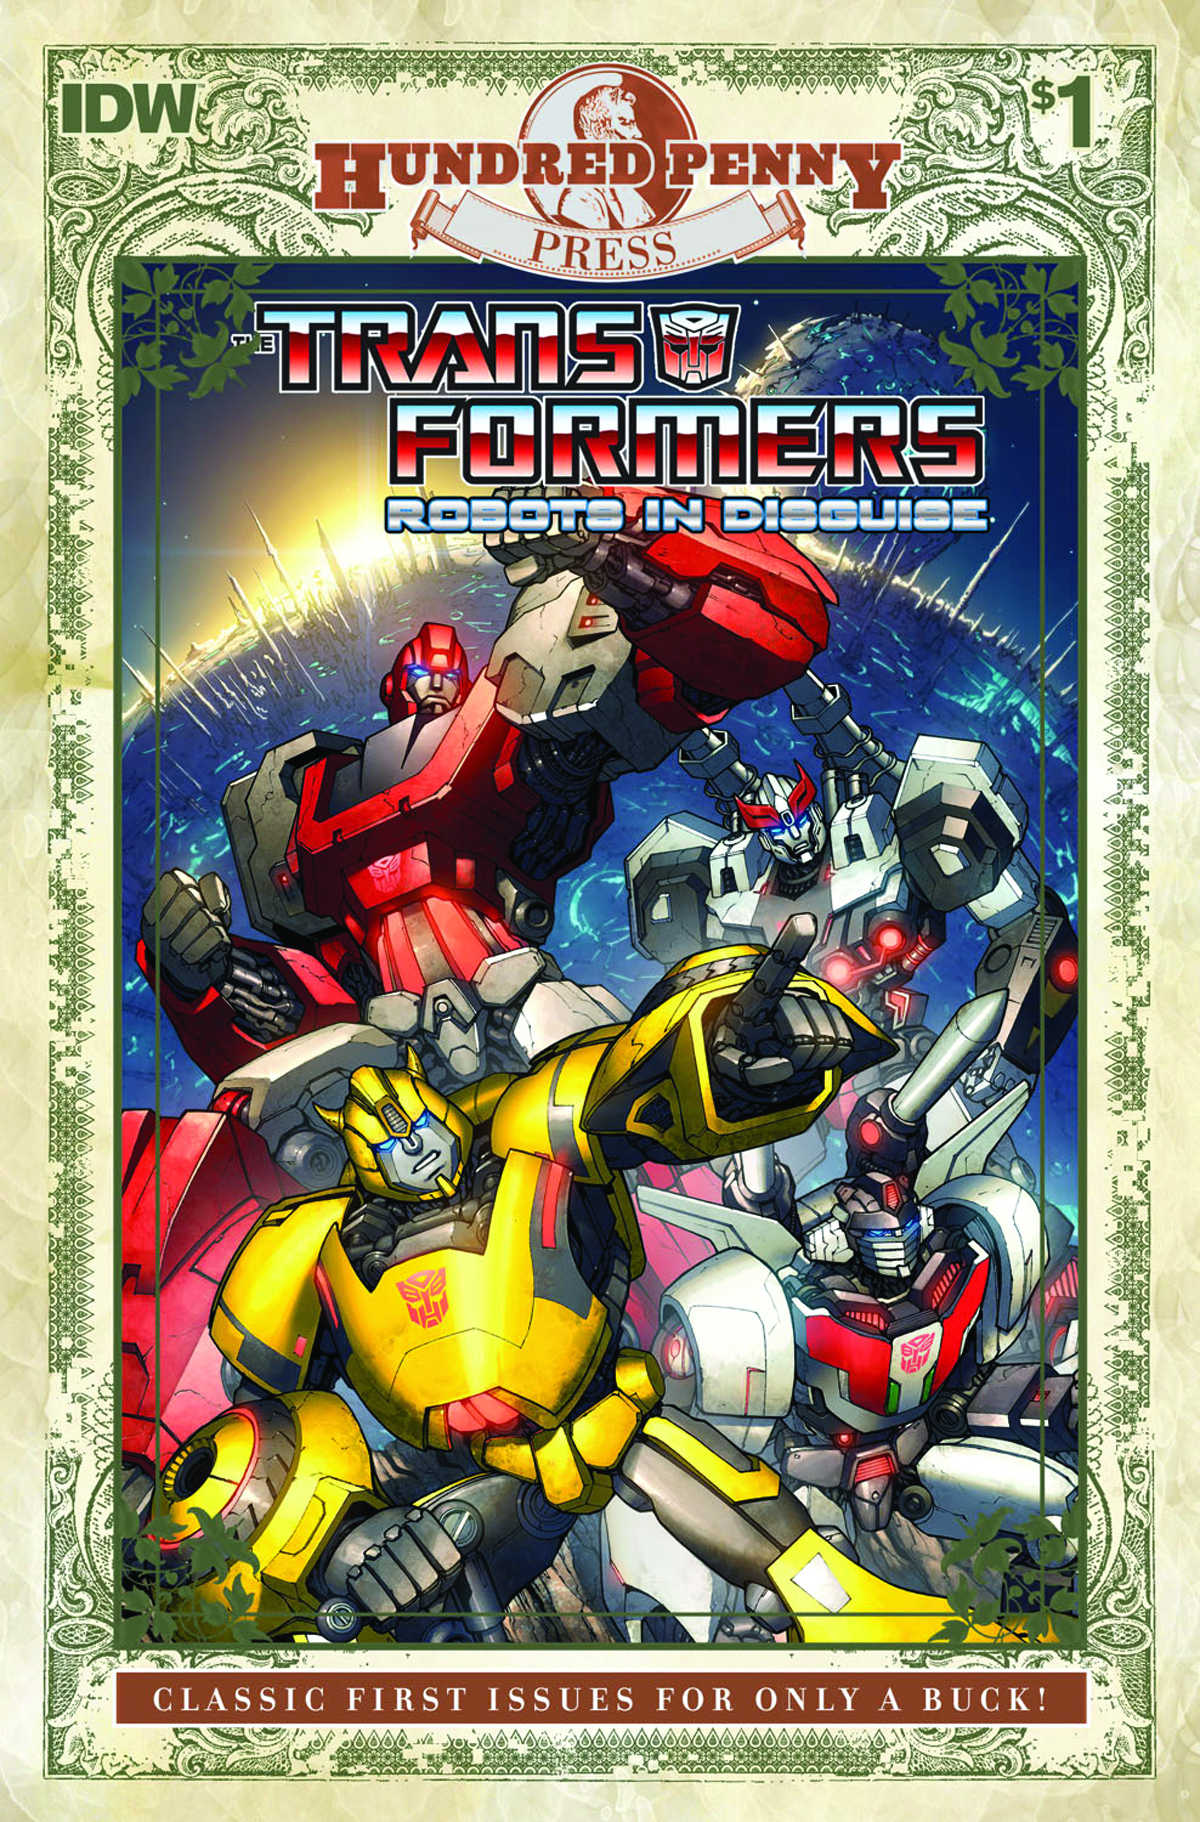 TRANSFORMERS ROBOTS IN DISGUISE 100 PENNY PRESS #1